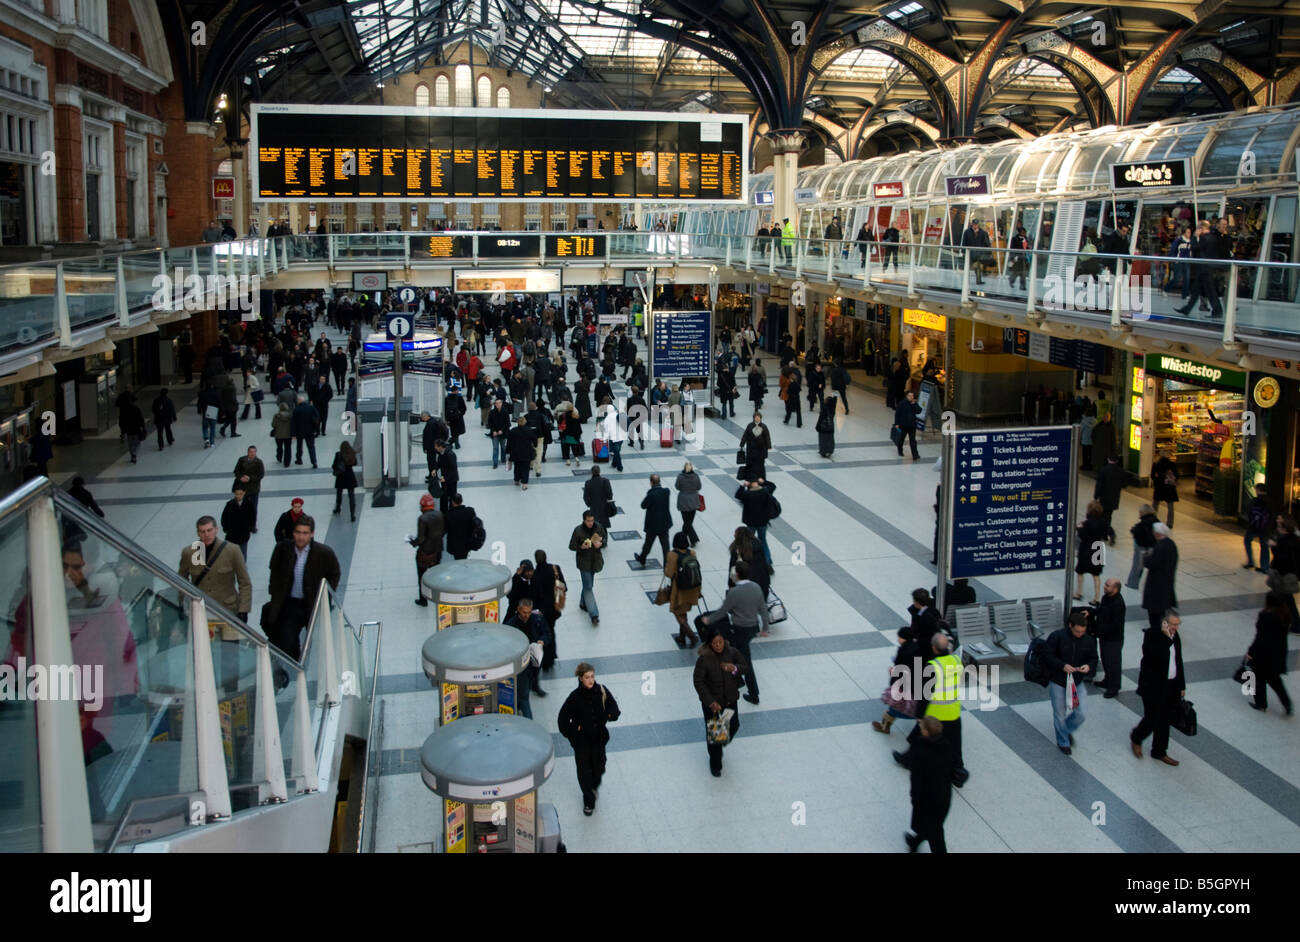 Commuters in the morning at Liverpool Street Station, London - Stock Image